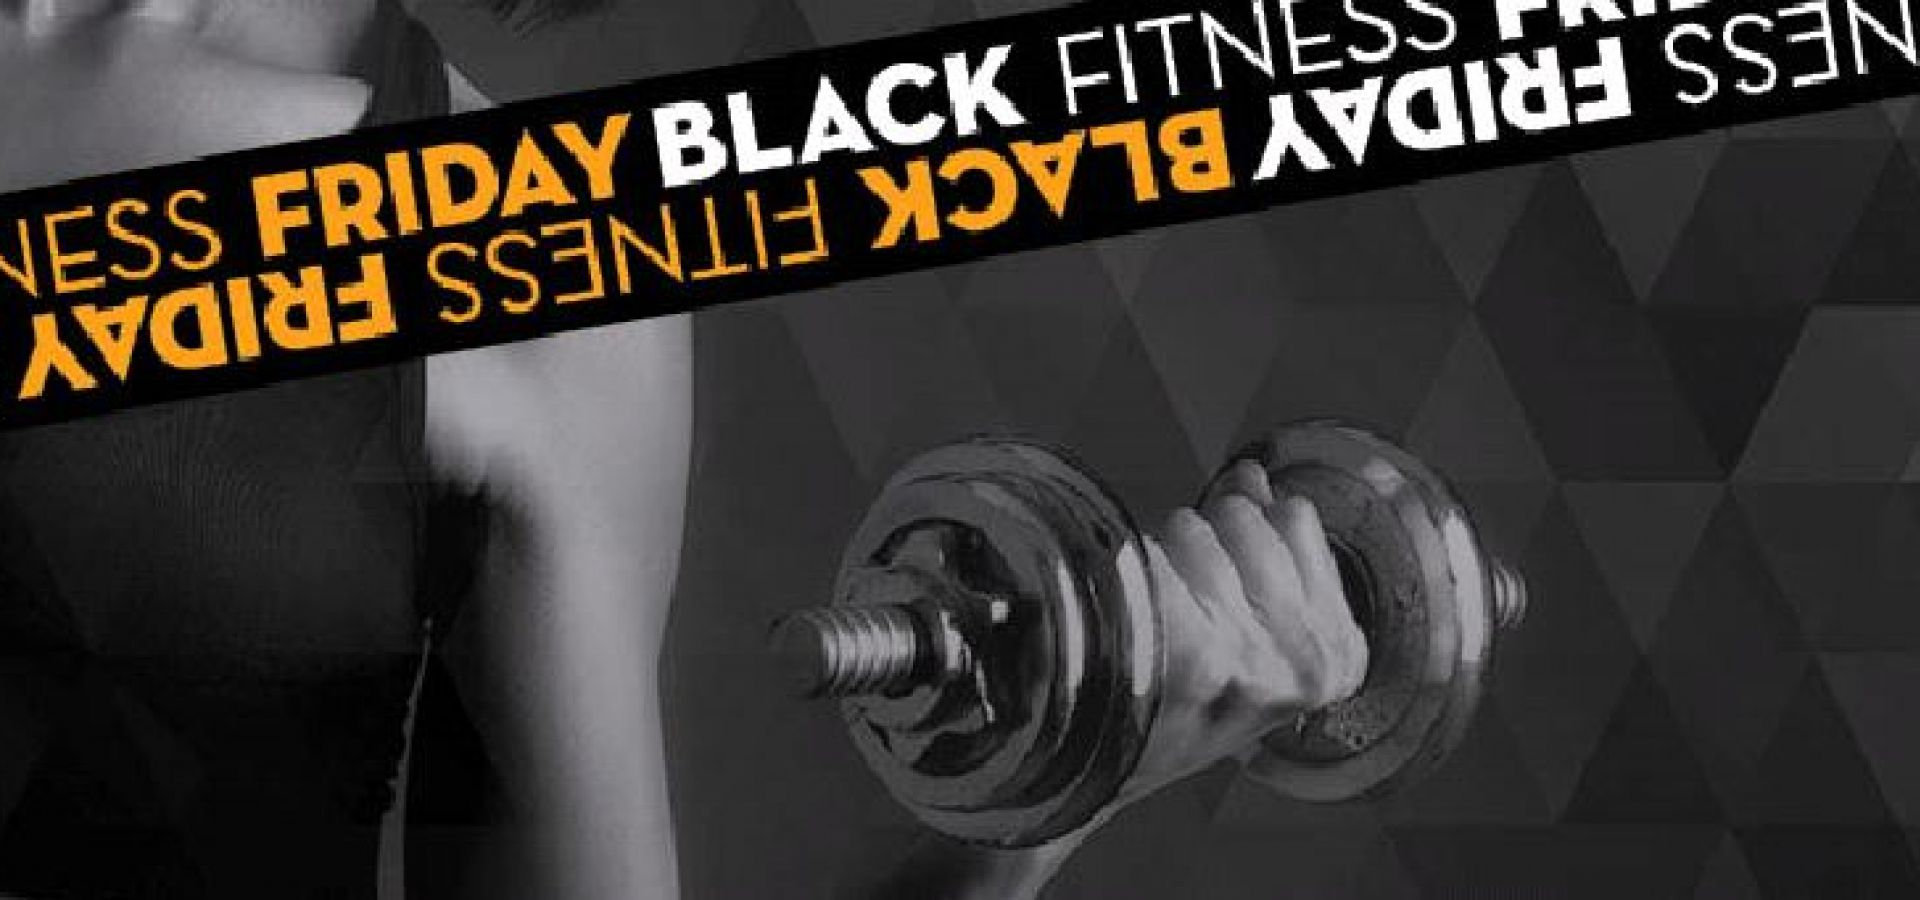 BLACK FITNESS FRIDAY